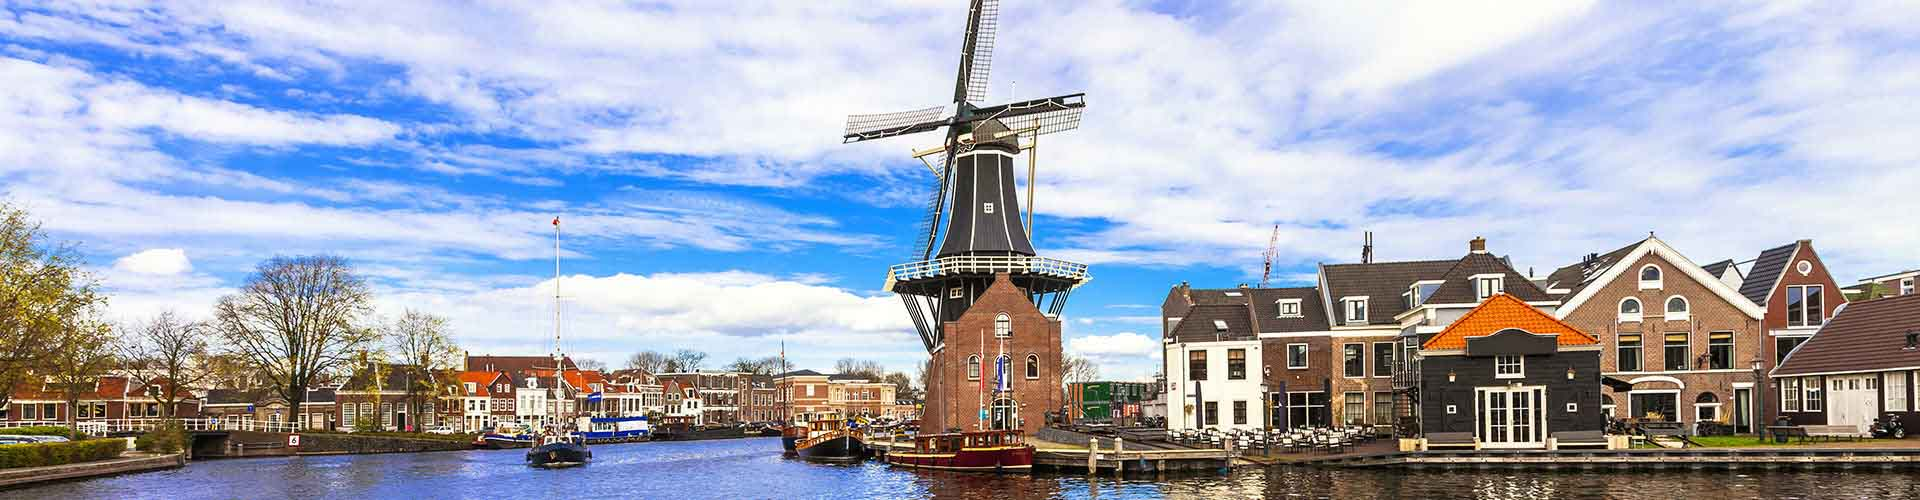 Haarlem – Hostels in Haarlem. Maps for Haarlem, Photos and Reviews for each hostel in Haarlem.